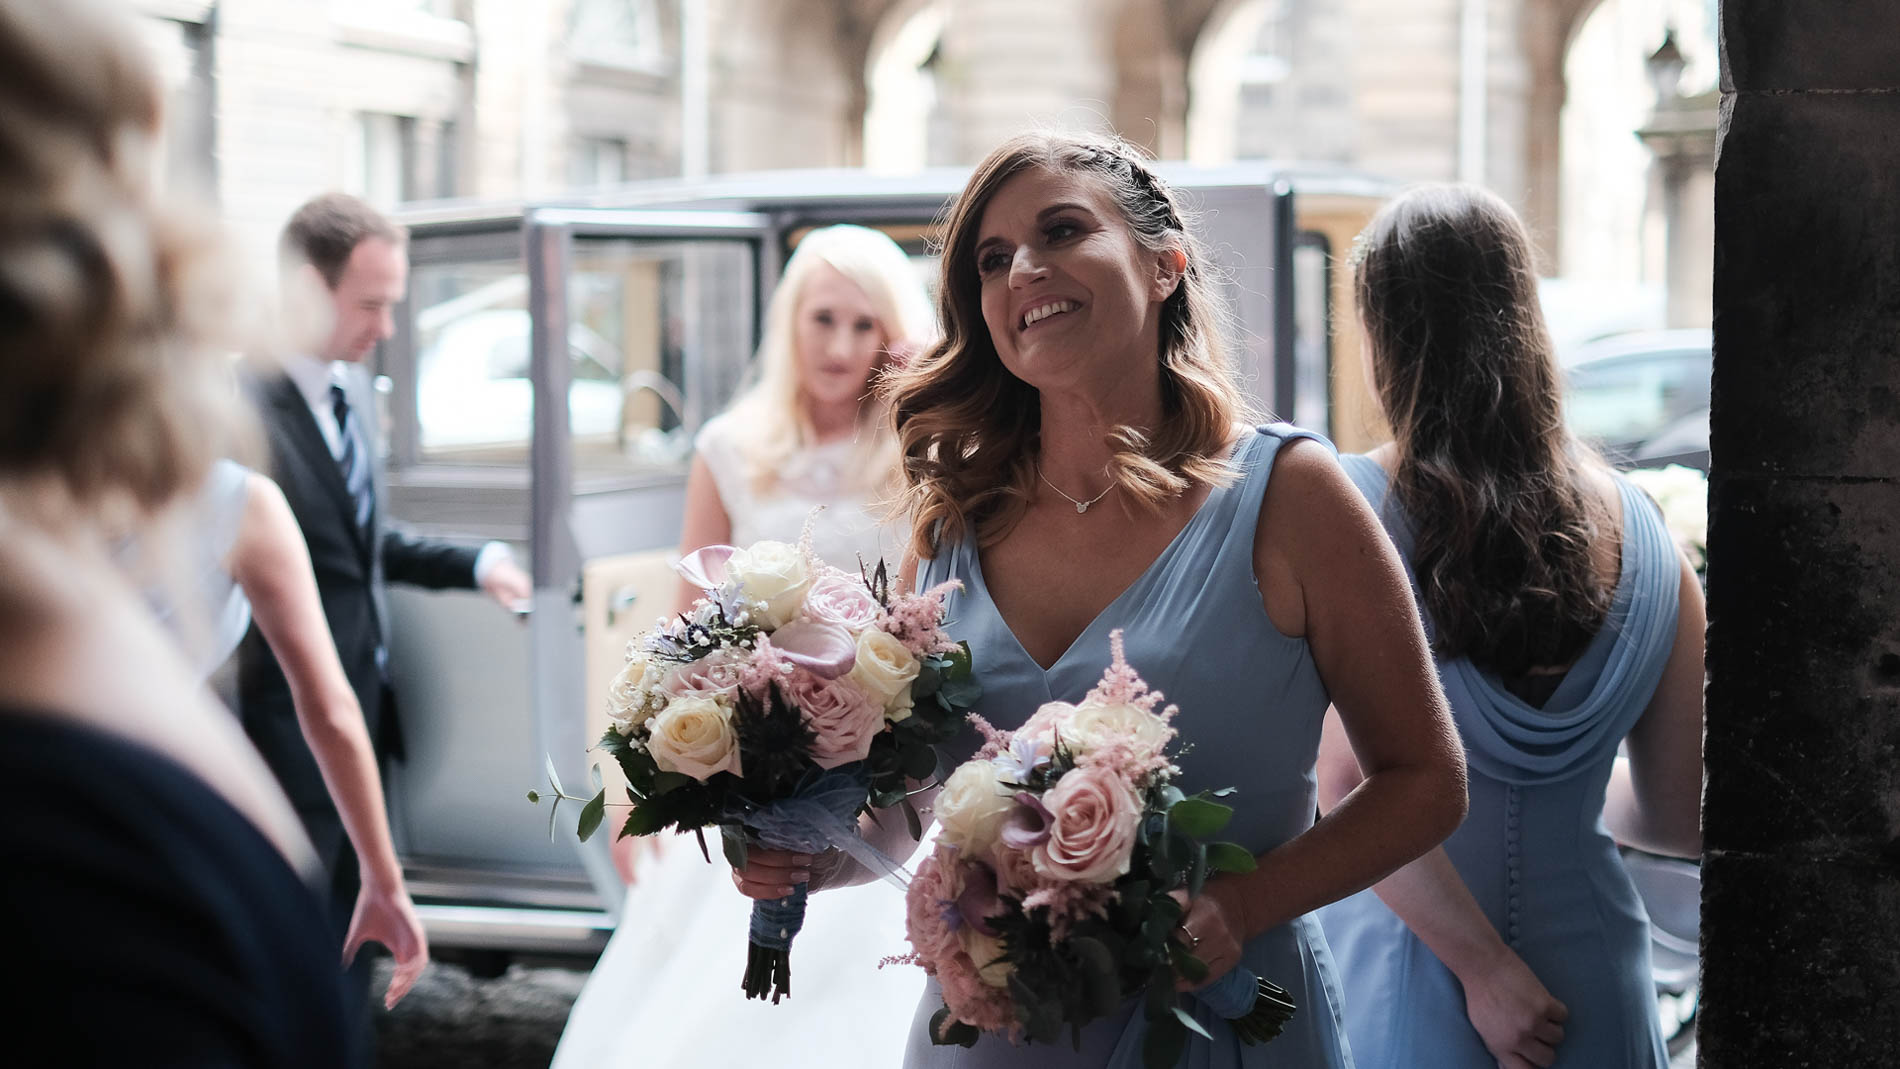 Colour photograph of a bridesmaid carry bouquets of flowers during a wedding at Edinburgh City Chambers